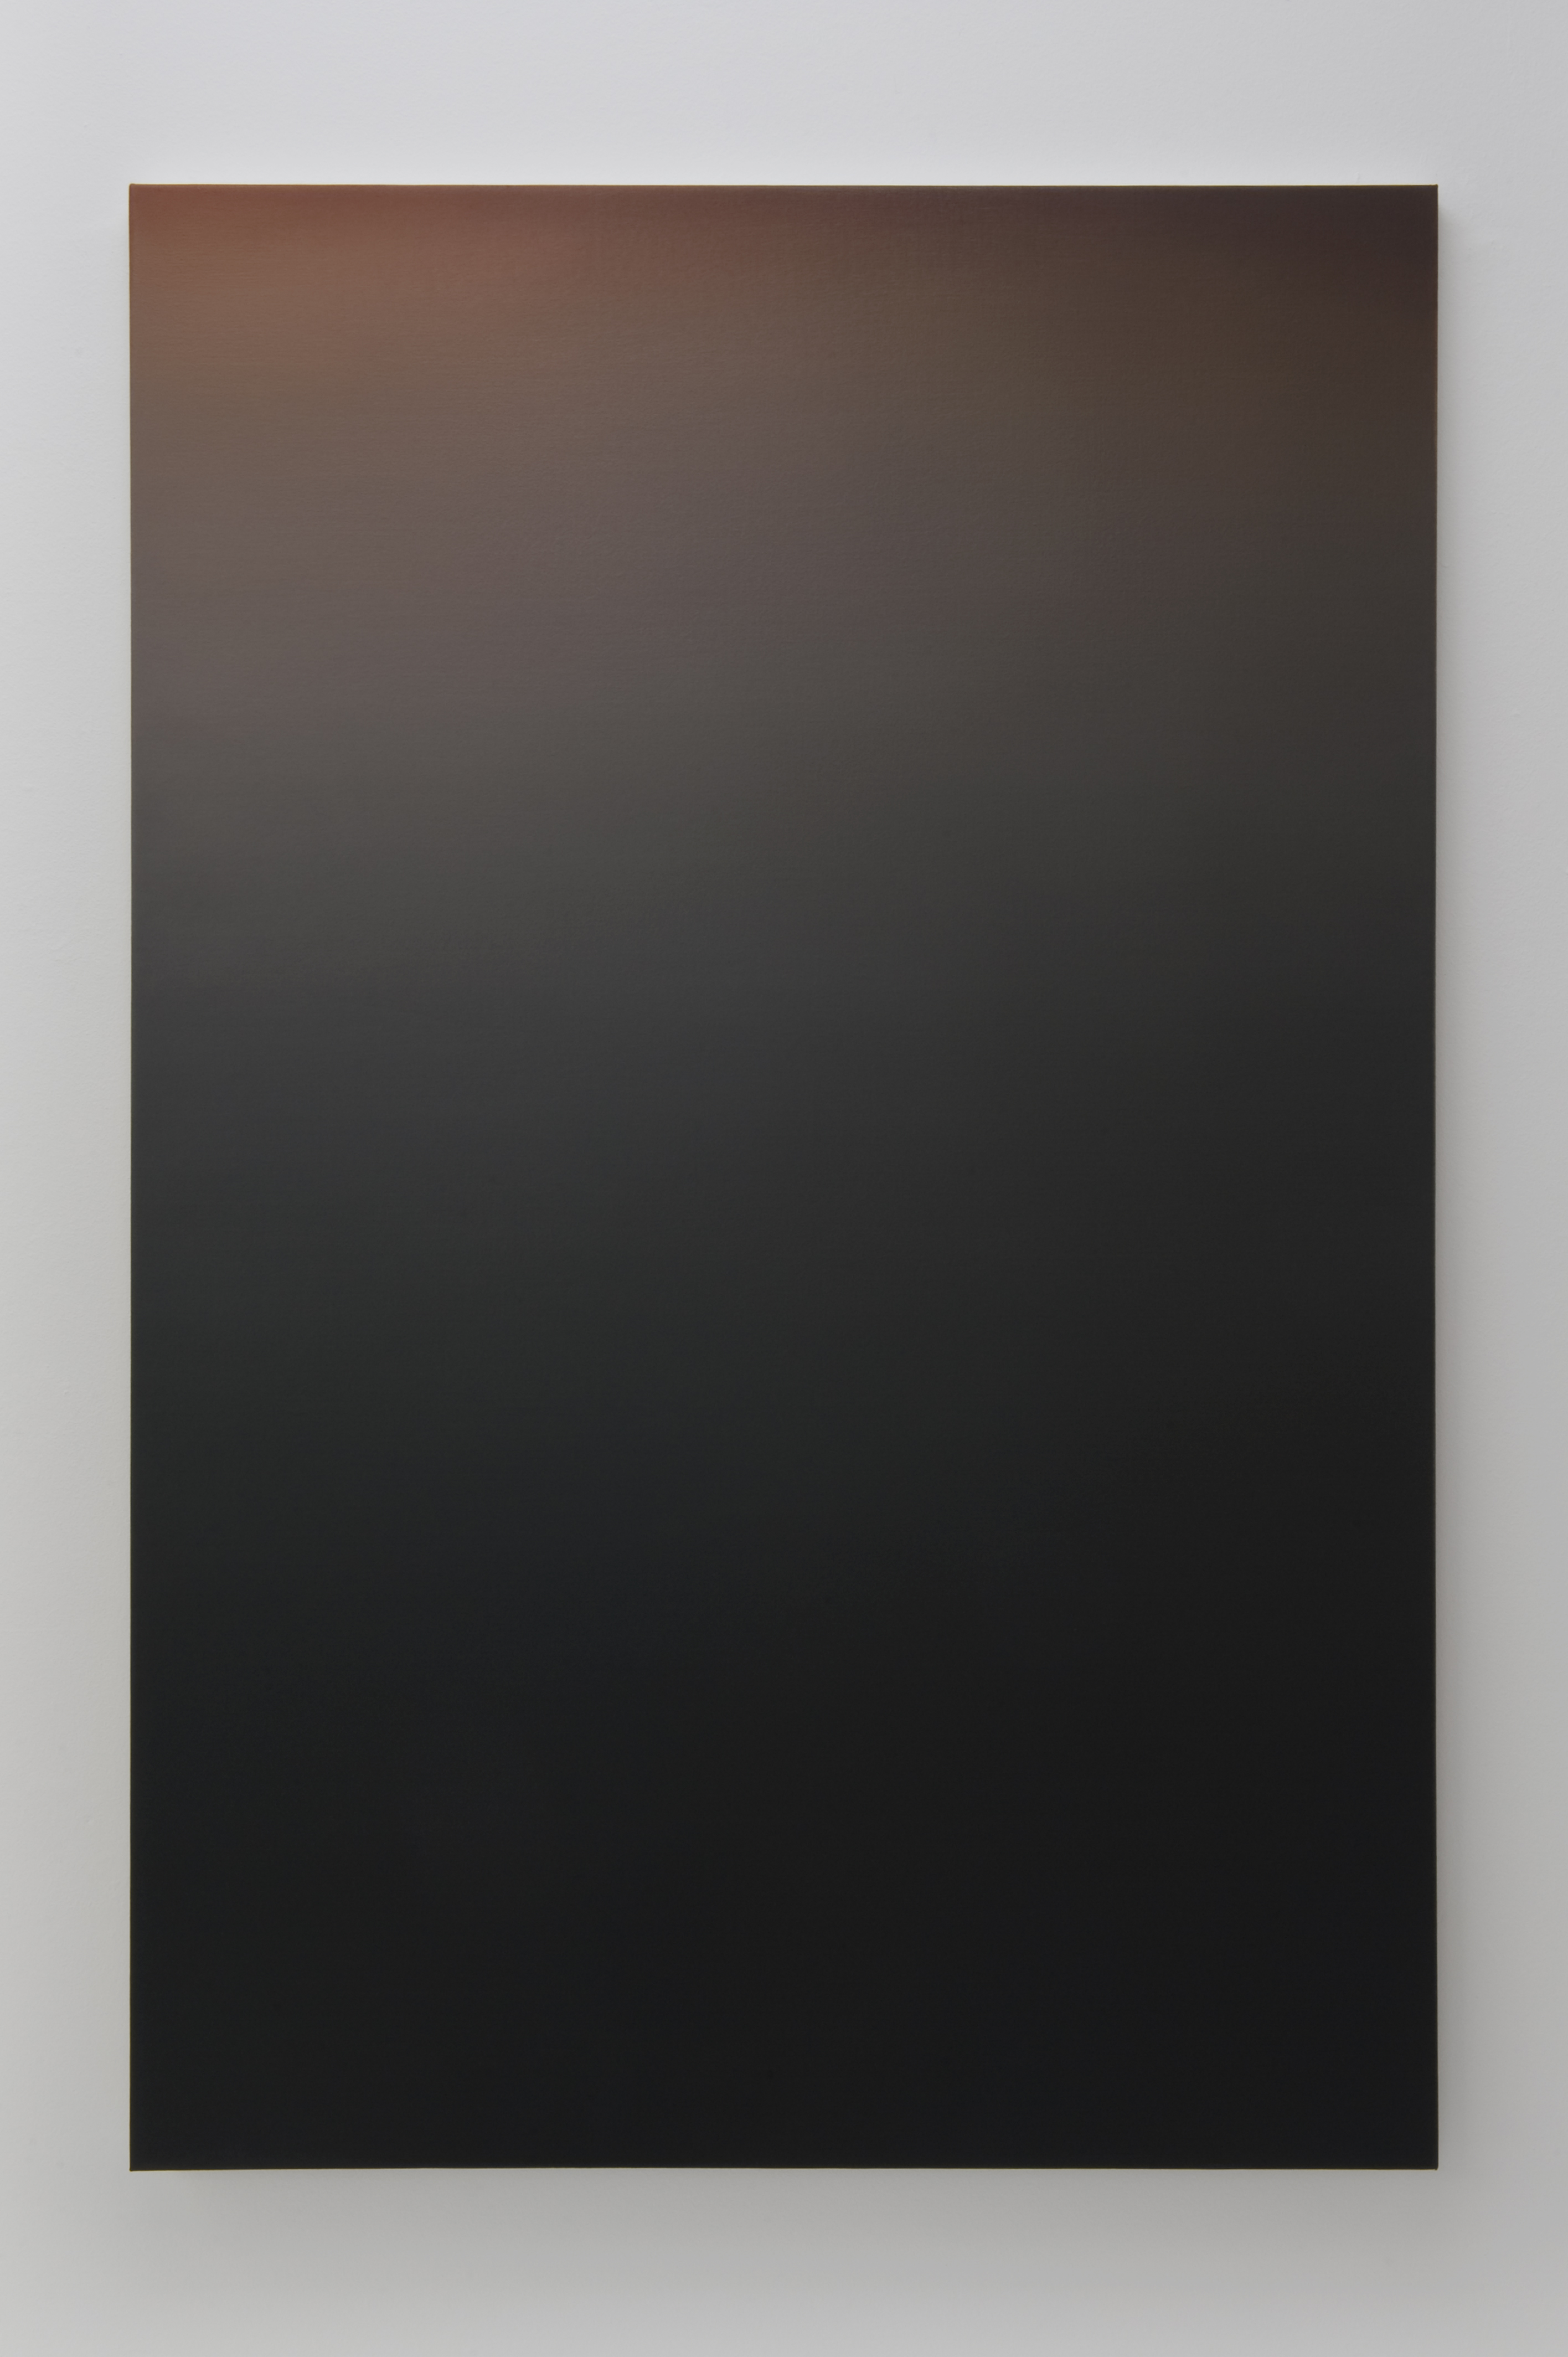 Untitled (Inverse #3), 2009 |  | ProjecteSD